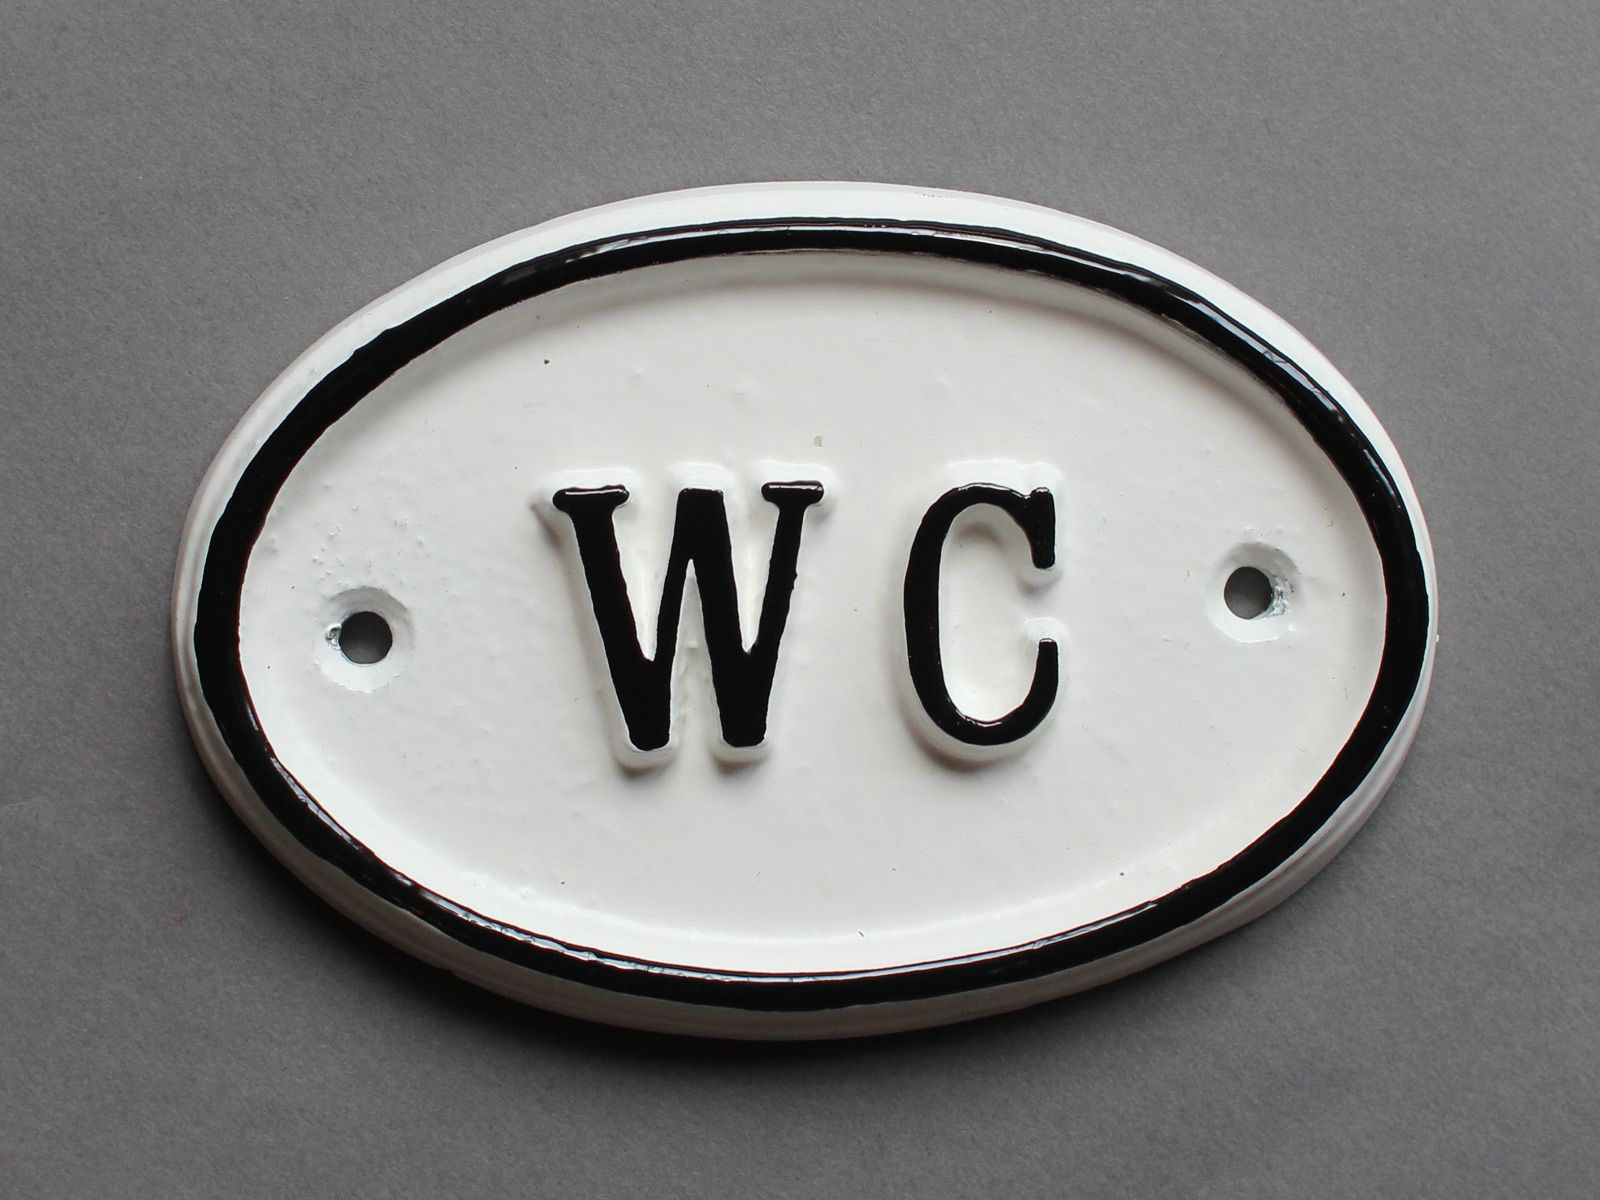 Bathroom sign for home - Wc Old Railway Toilet Door Sign